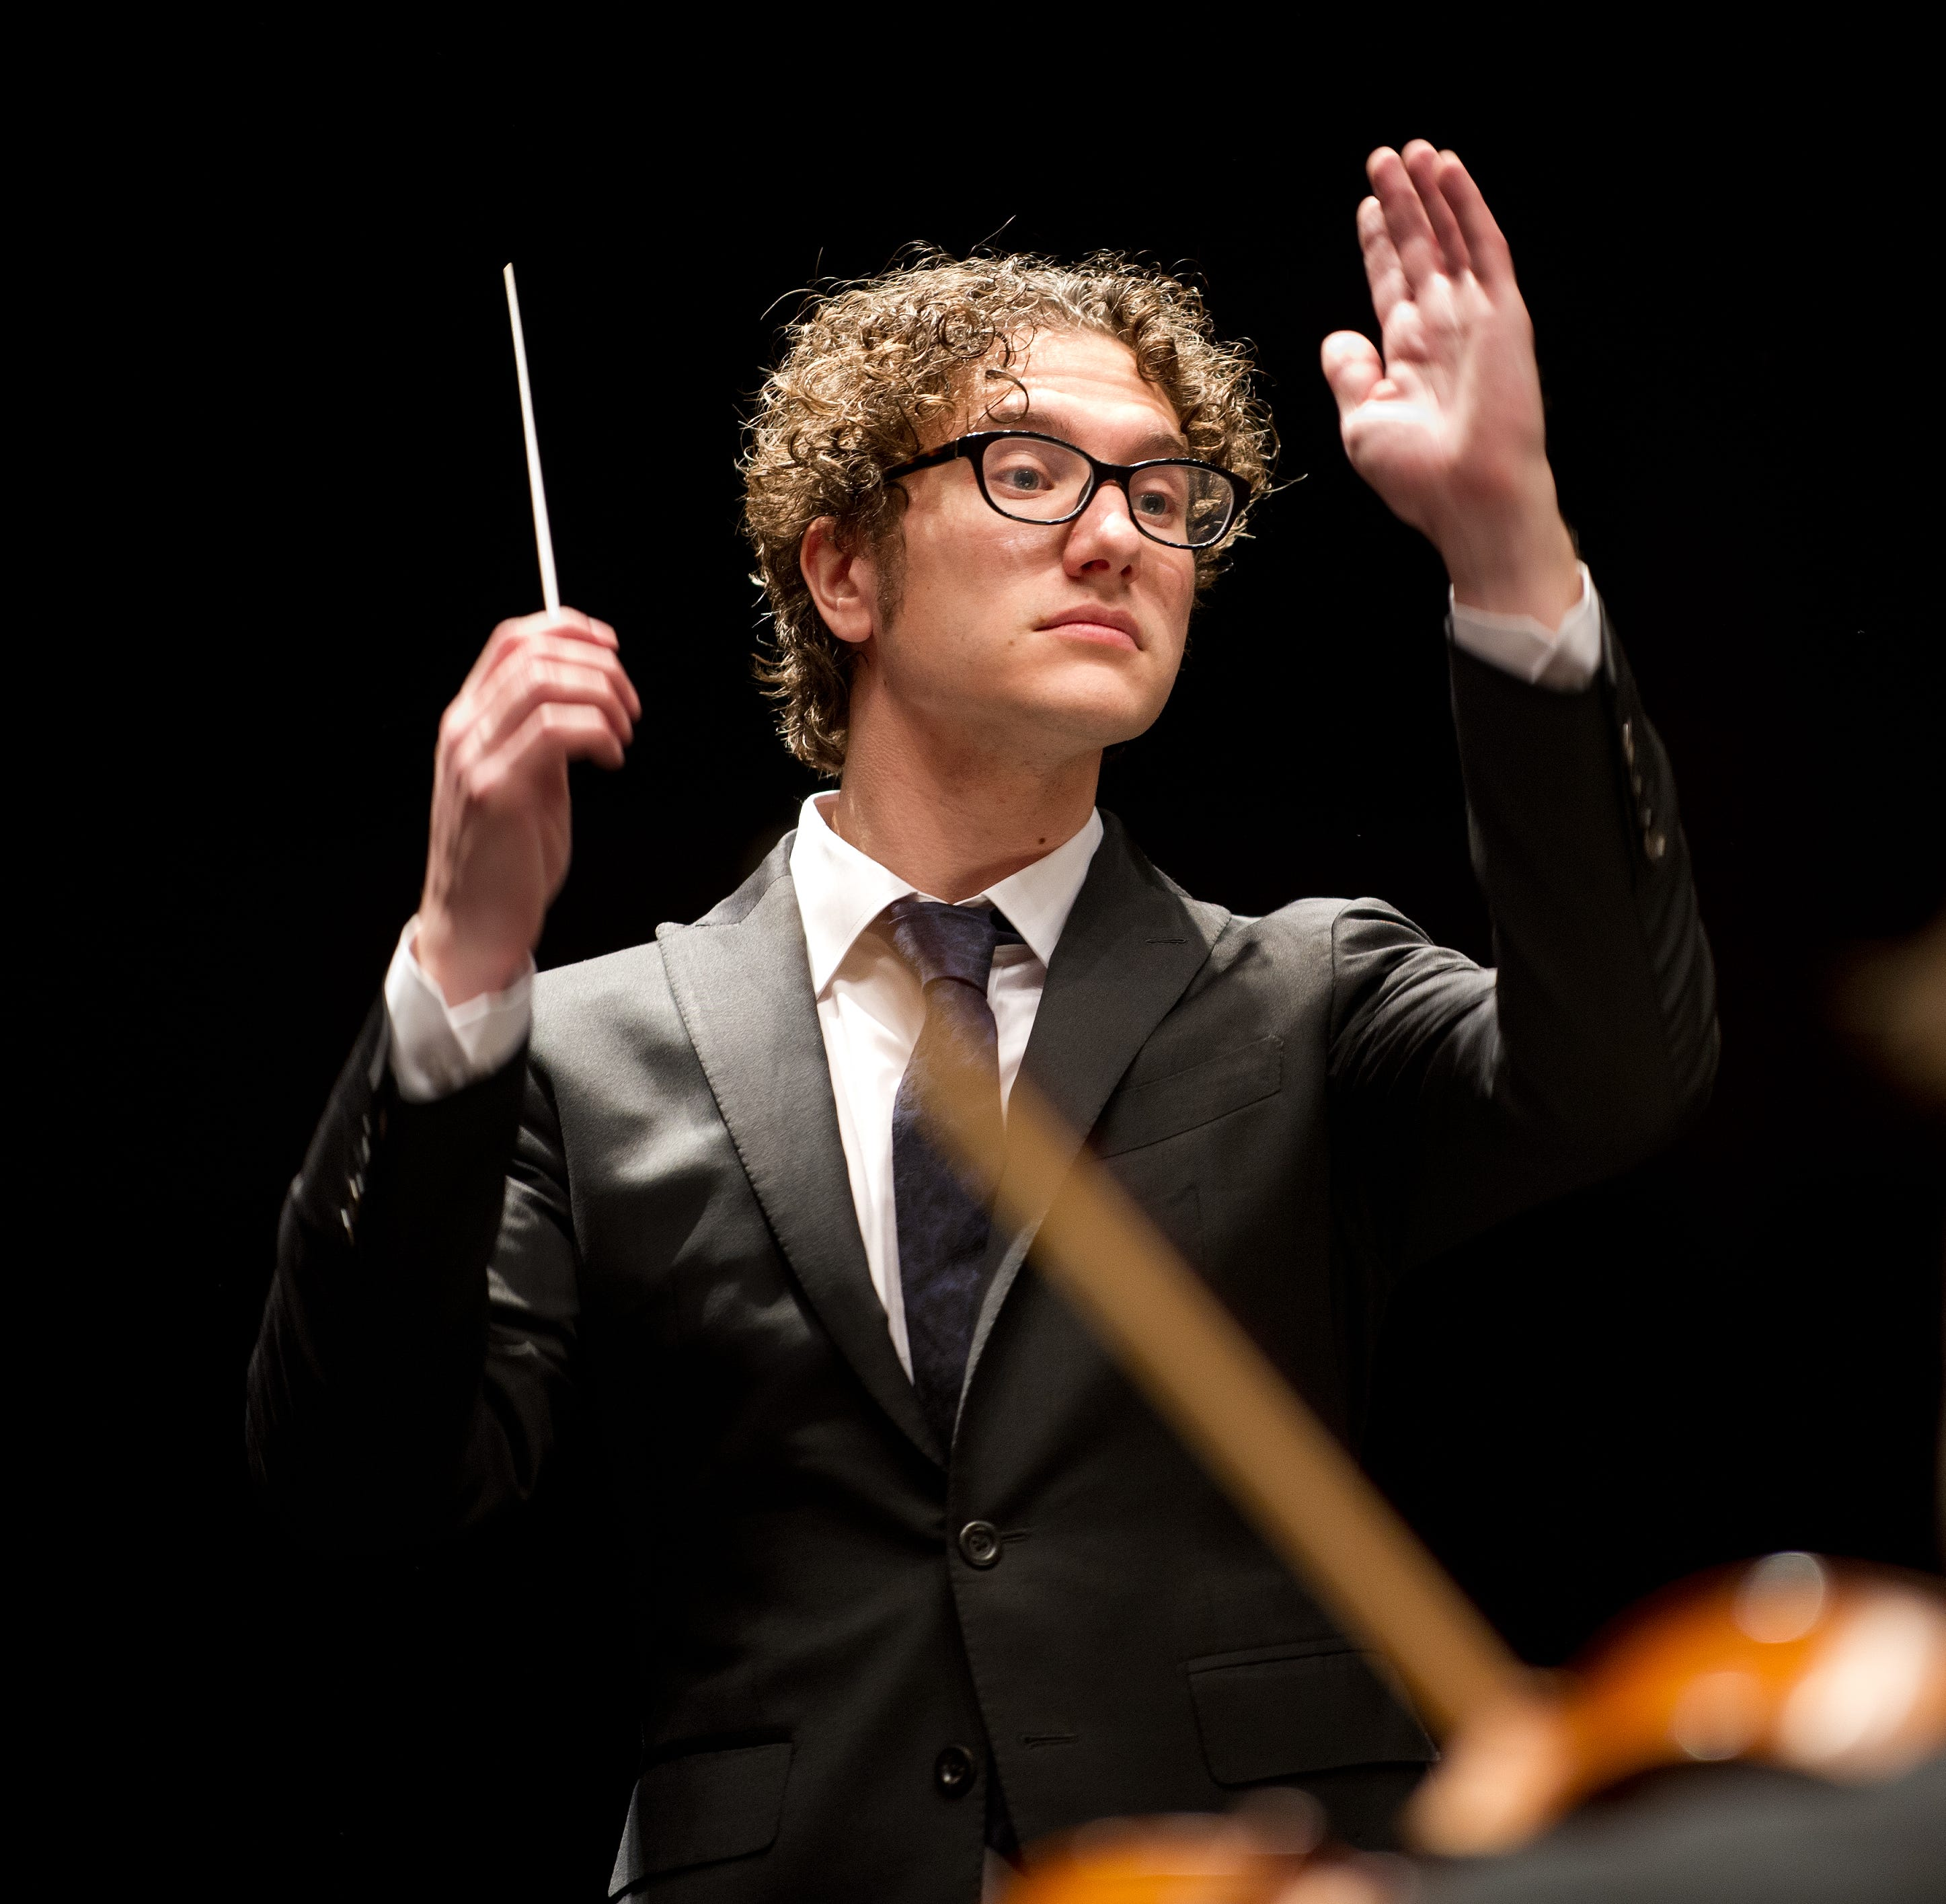 CBS Sunday Morning to feature Louisville Orchestra conductor Teddy Abrams